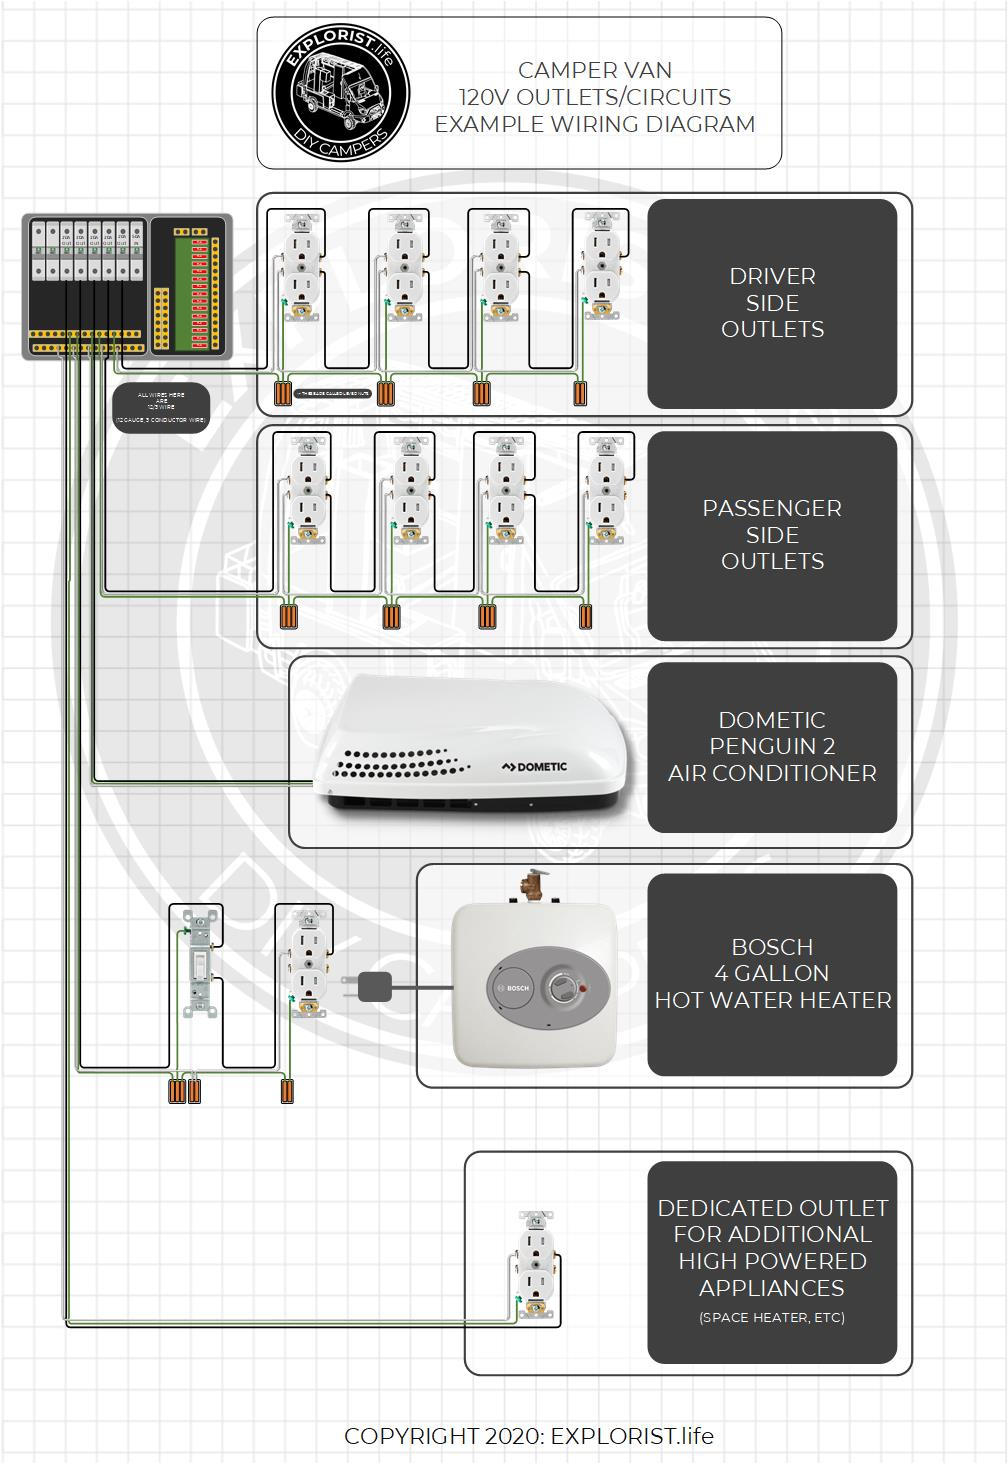 120v Branch Circuits (Outlets) Wiring Diagram – High Resolution